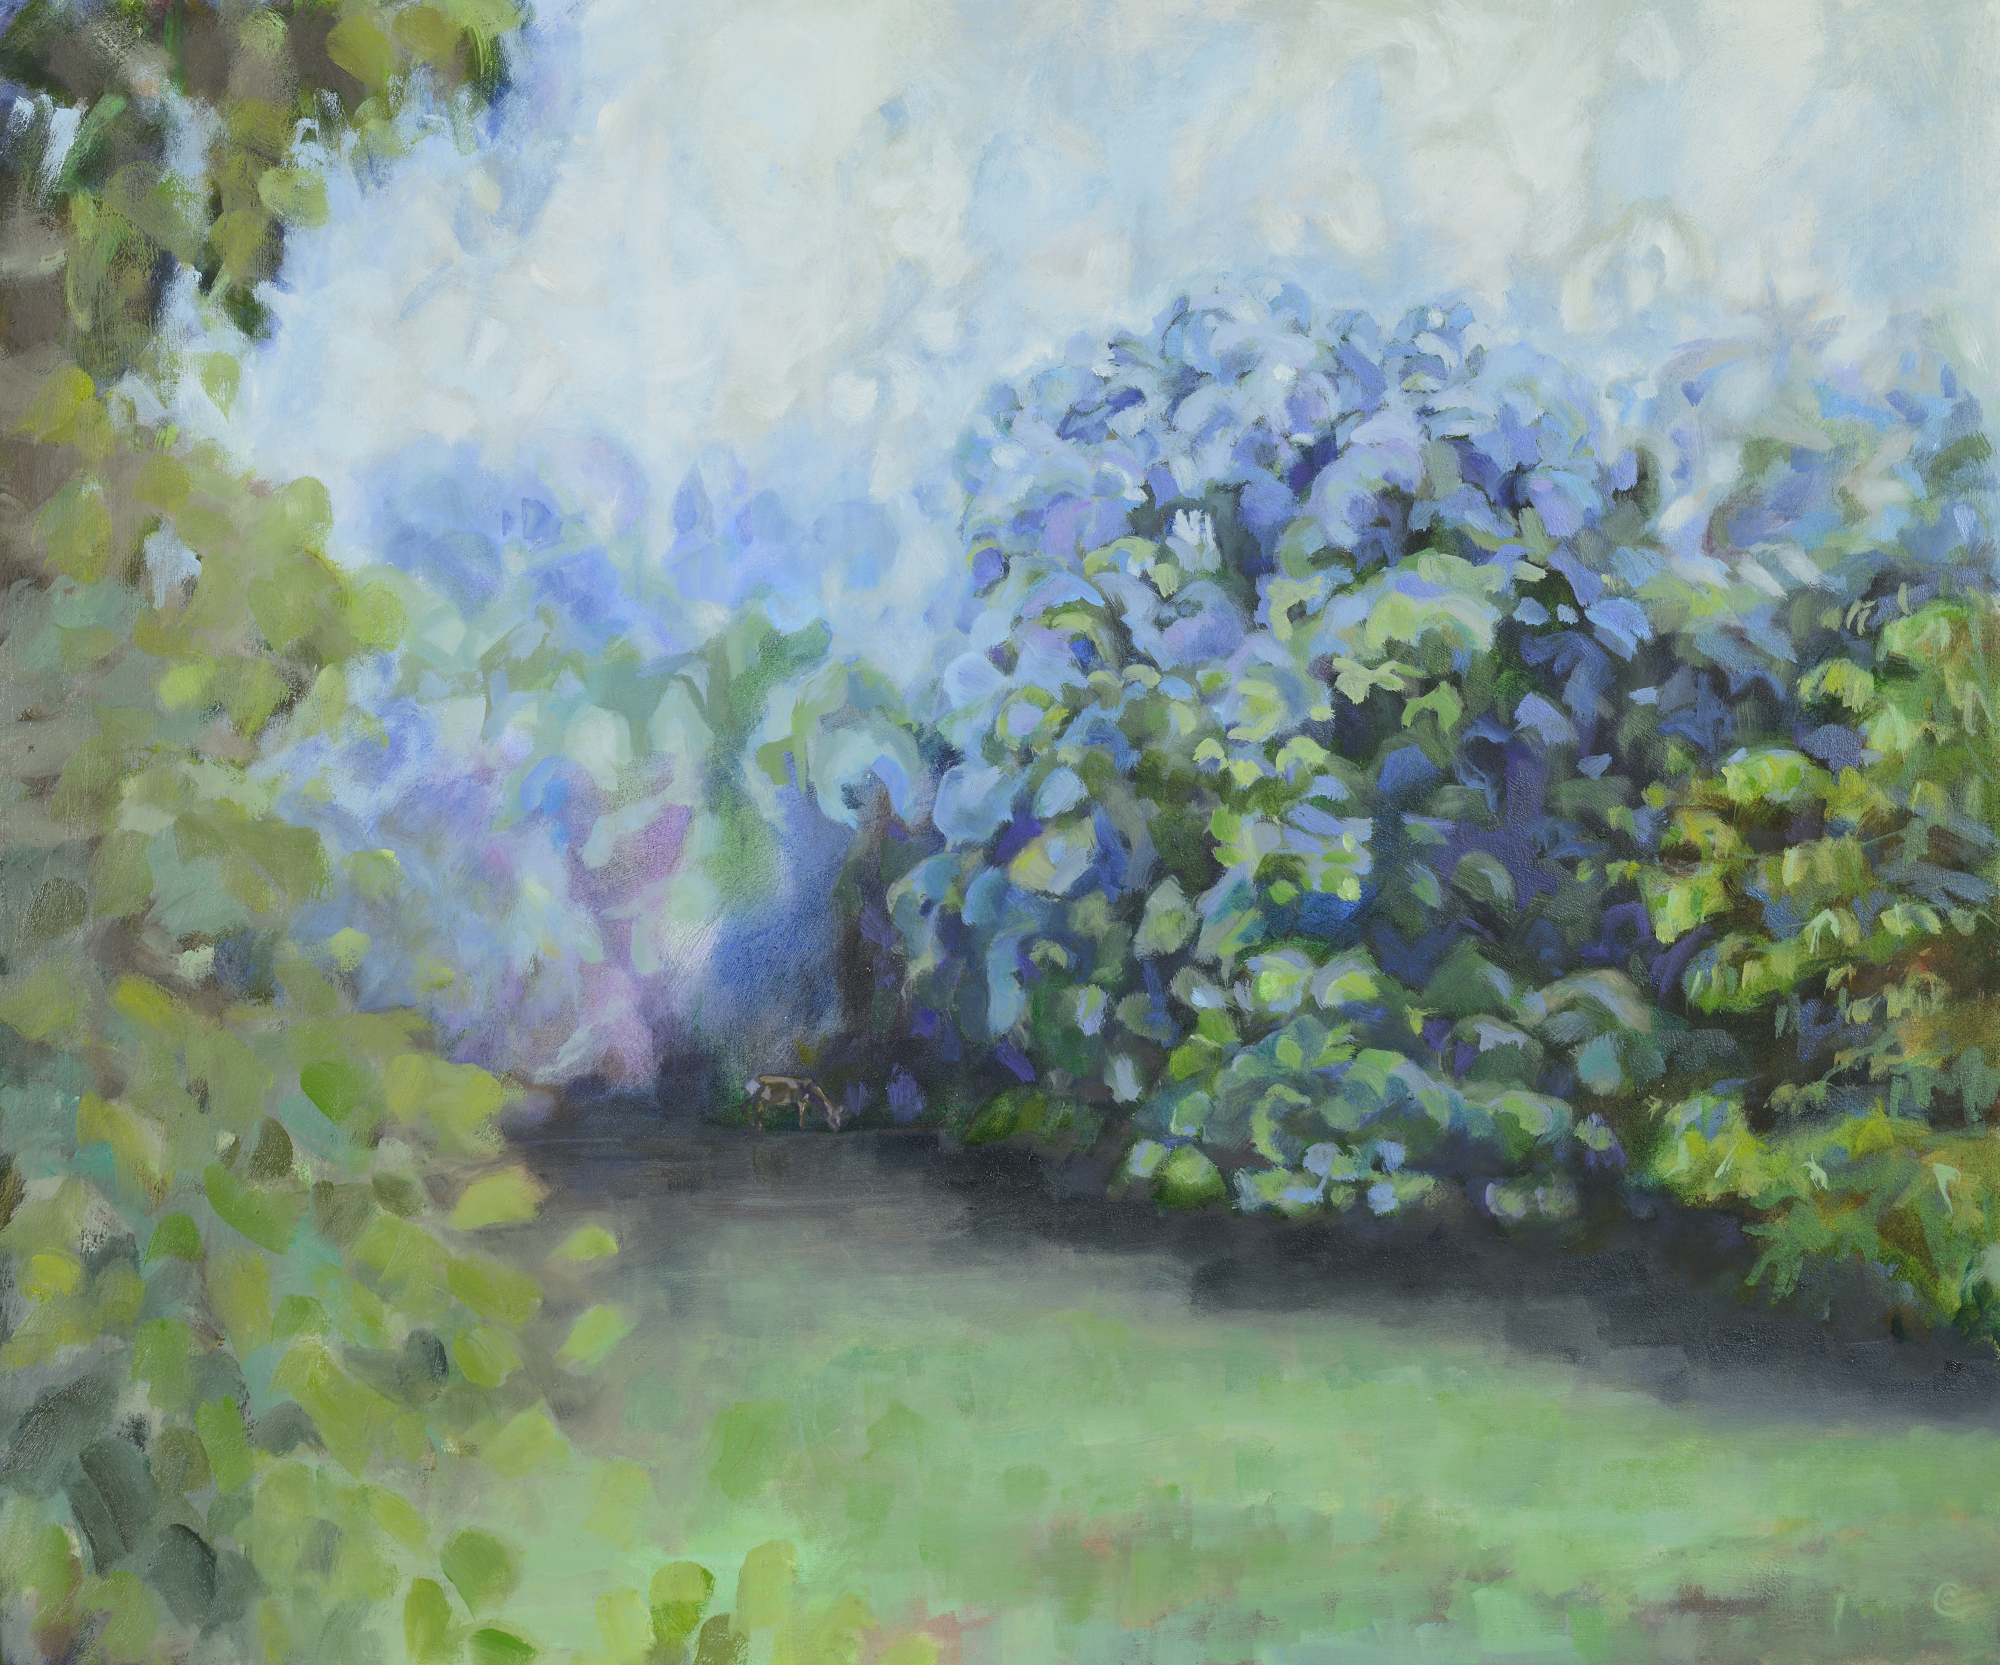 Catherine Coulson | Orchard Mist, Towards the Ash Tree | 2018 | oil on board | 20x24in